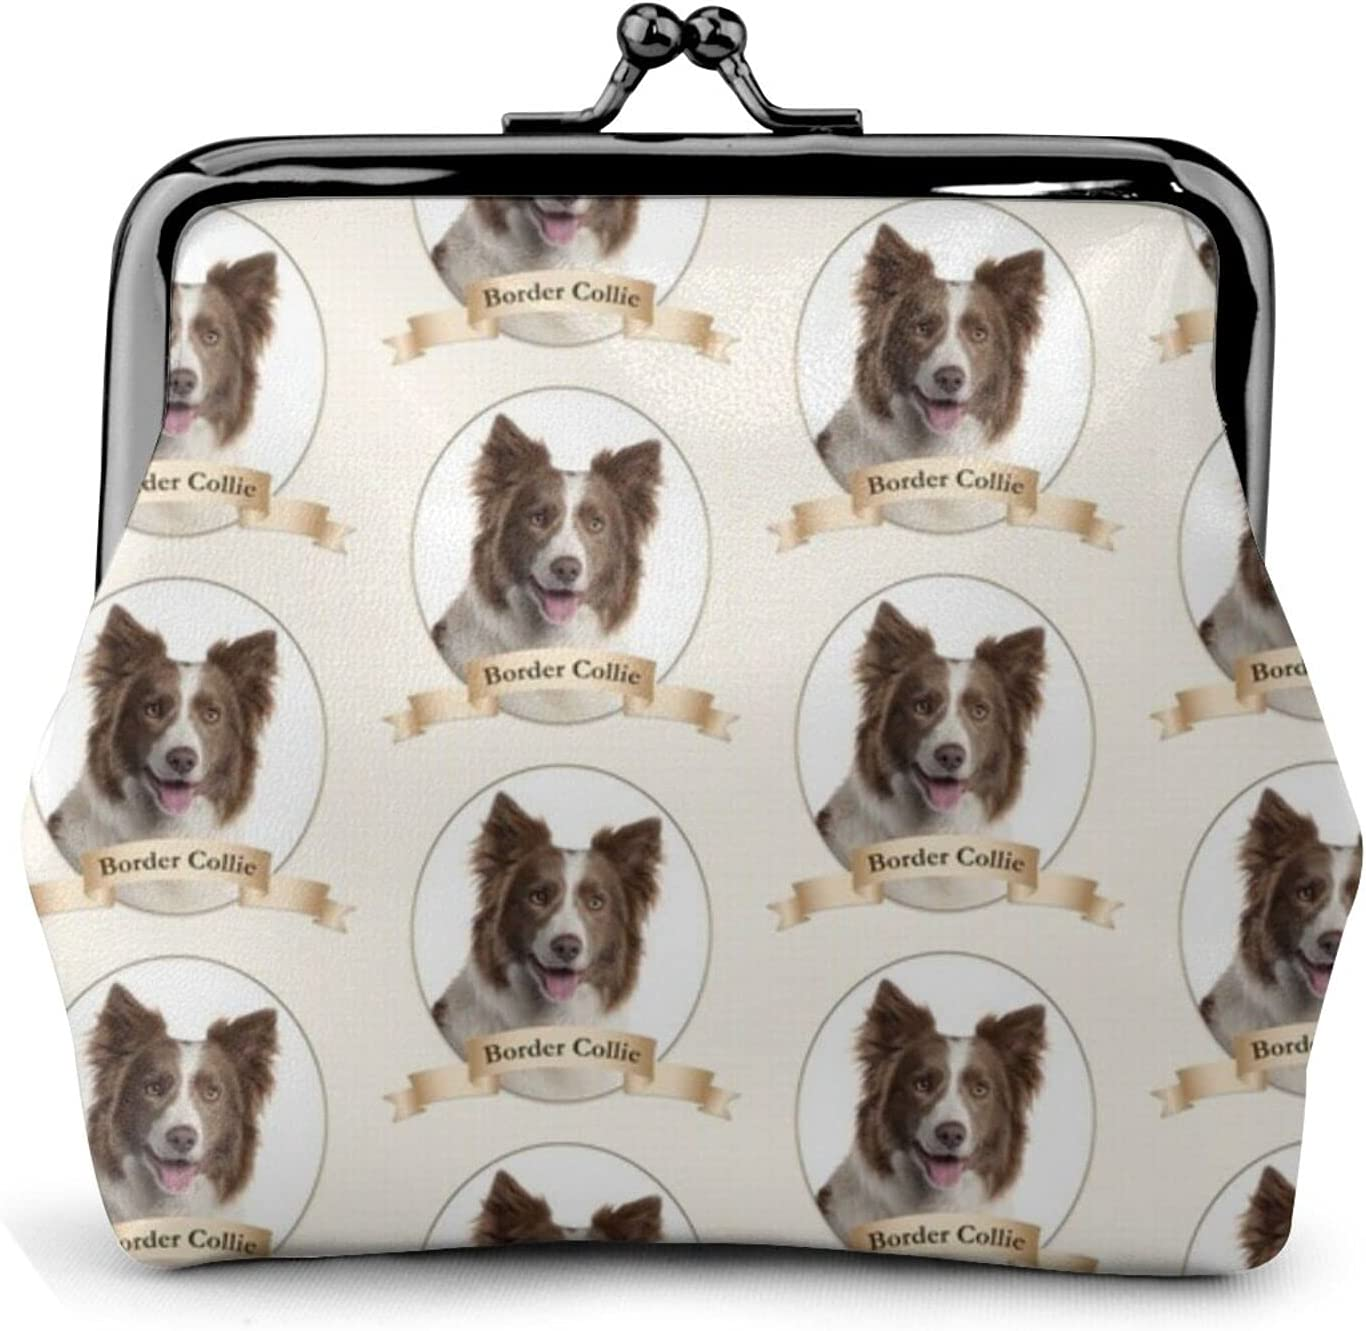 Chocolate Border Collie 1533 Coin Purse Retro Money Pouch with Kiss-lock Buckle Small Wallet for Women and Girls